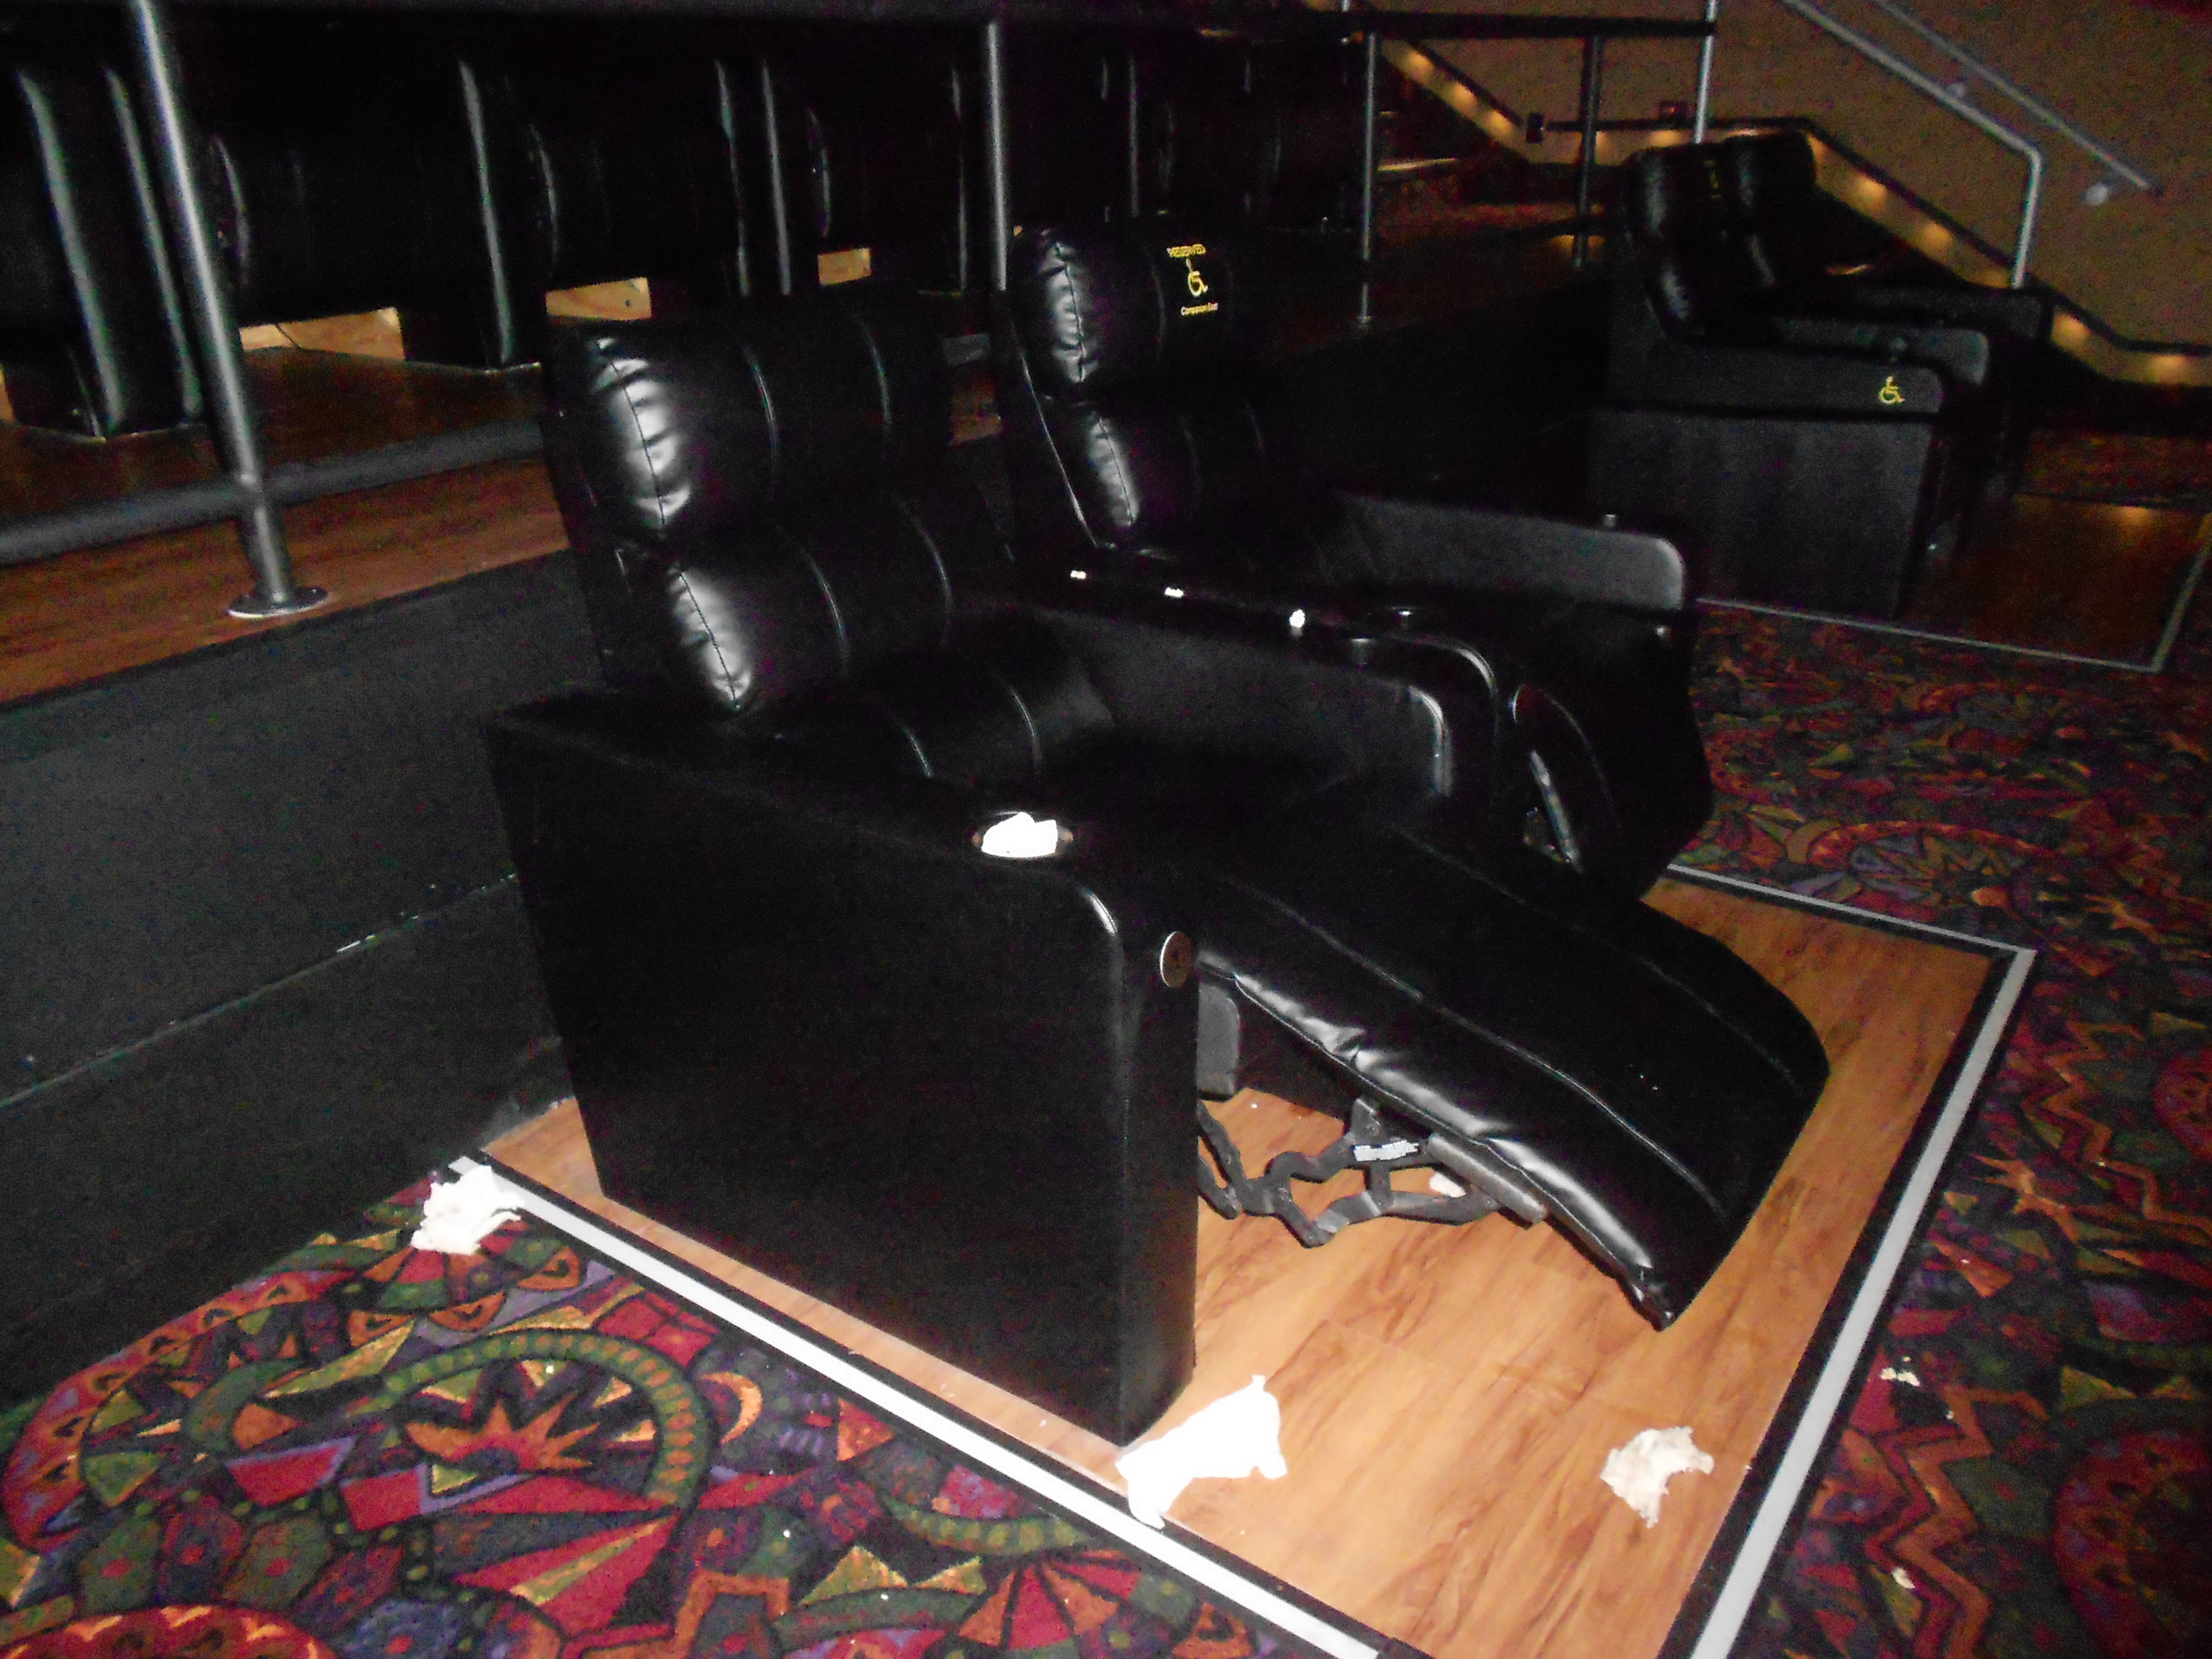 Merveilleux Large Reclining Chair At Selected Regal Cinema Theaters | KMOM14 Project  365 Take A Picture A Day